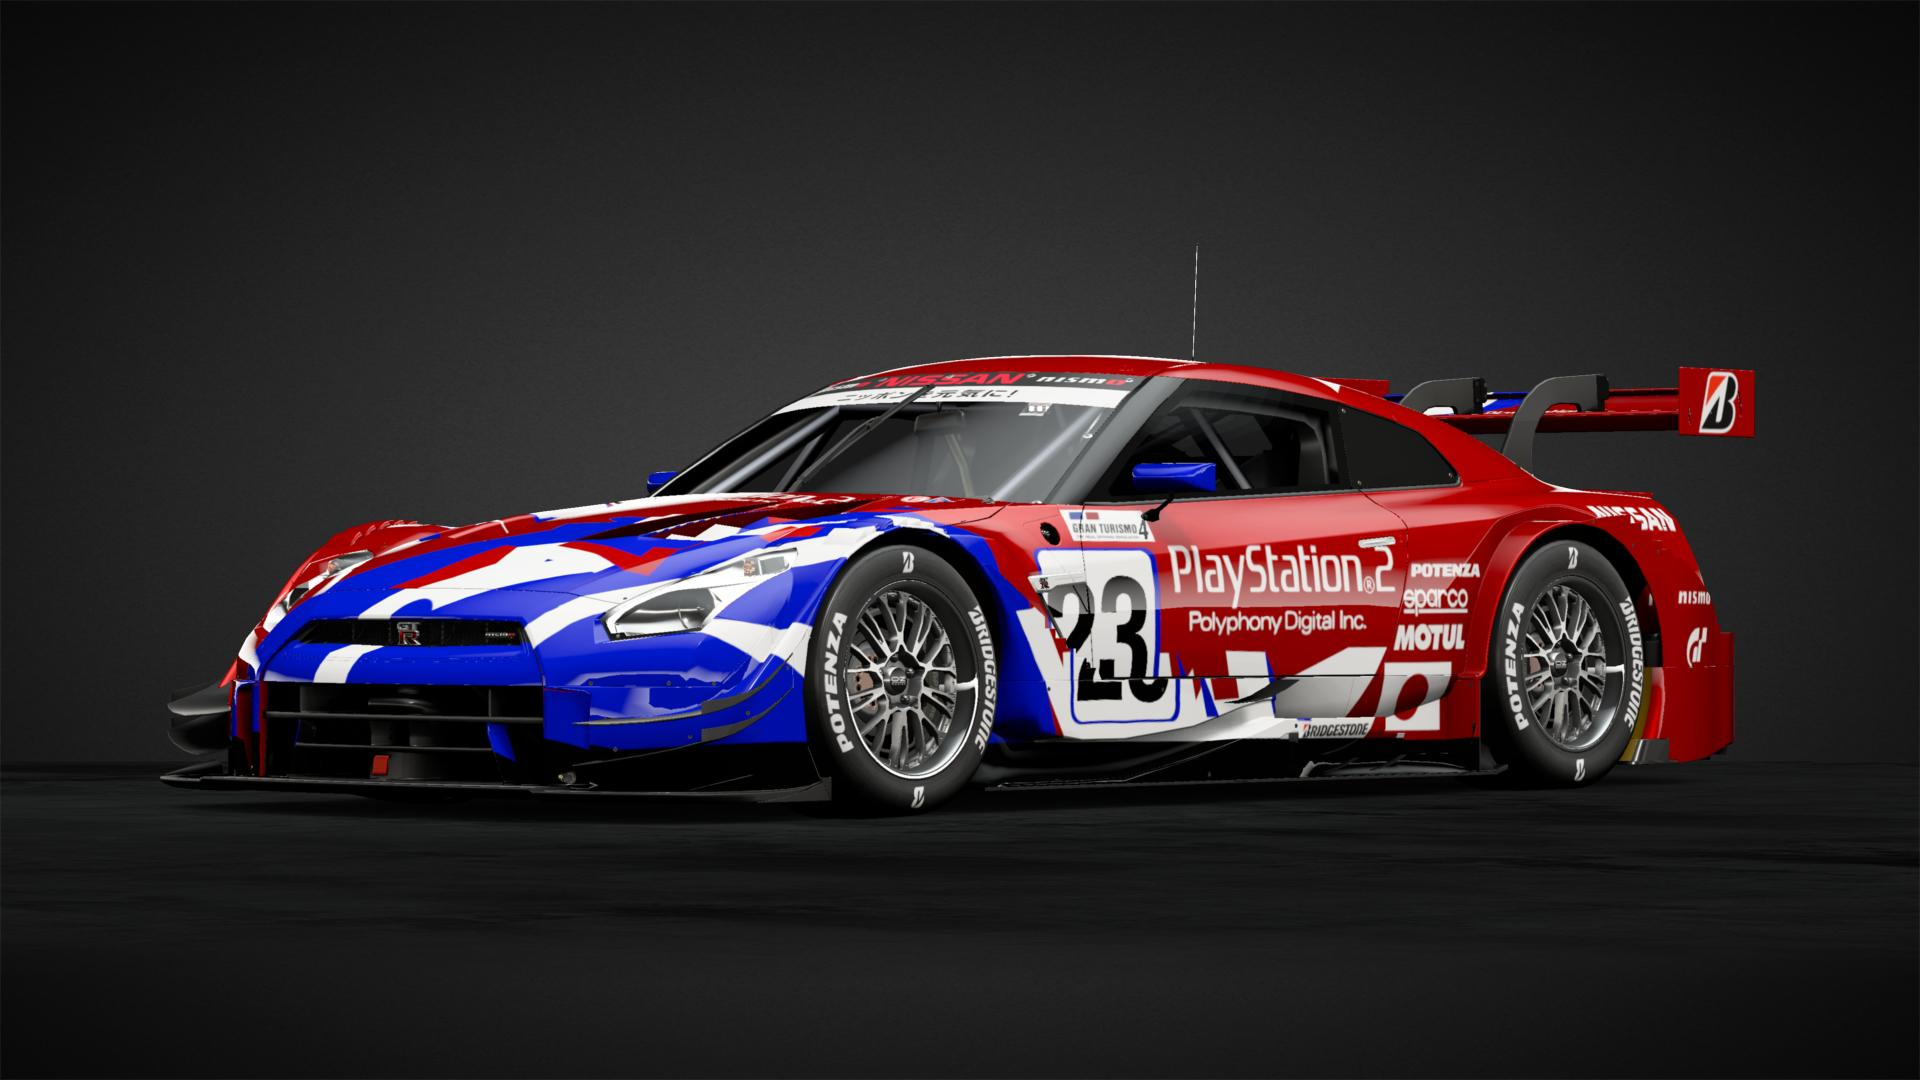 Nissan Gt R Concept Lm Race Car Livery By Rogholmespne1880 Community Gran Turismo Sport